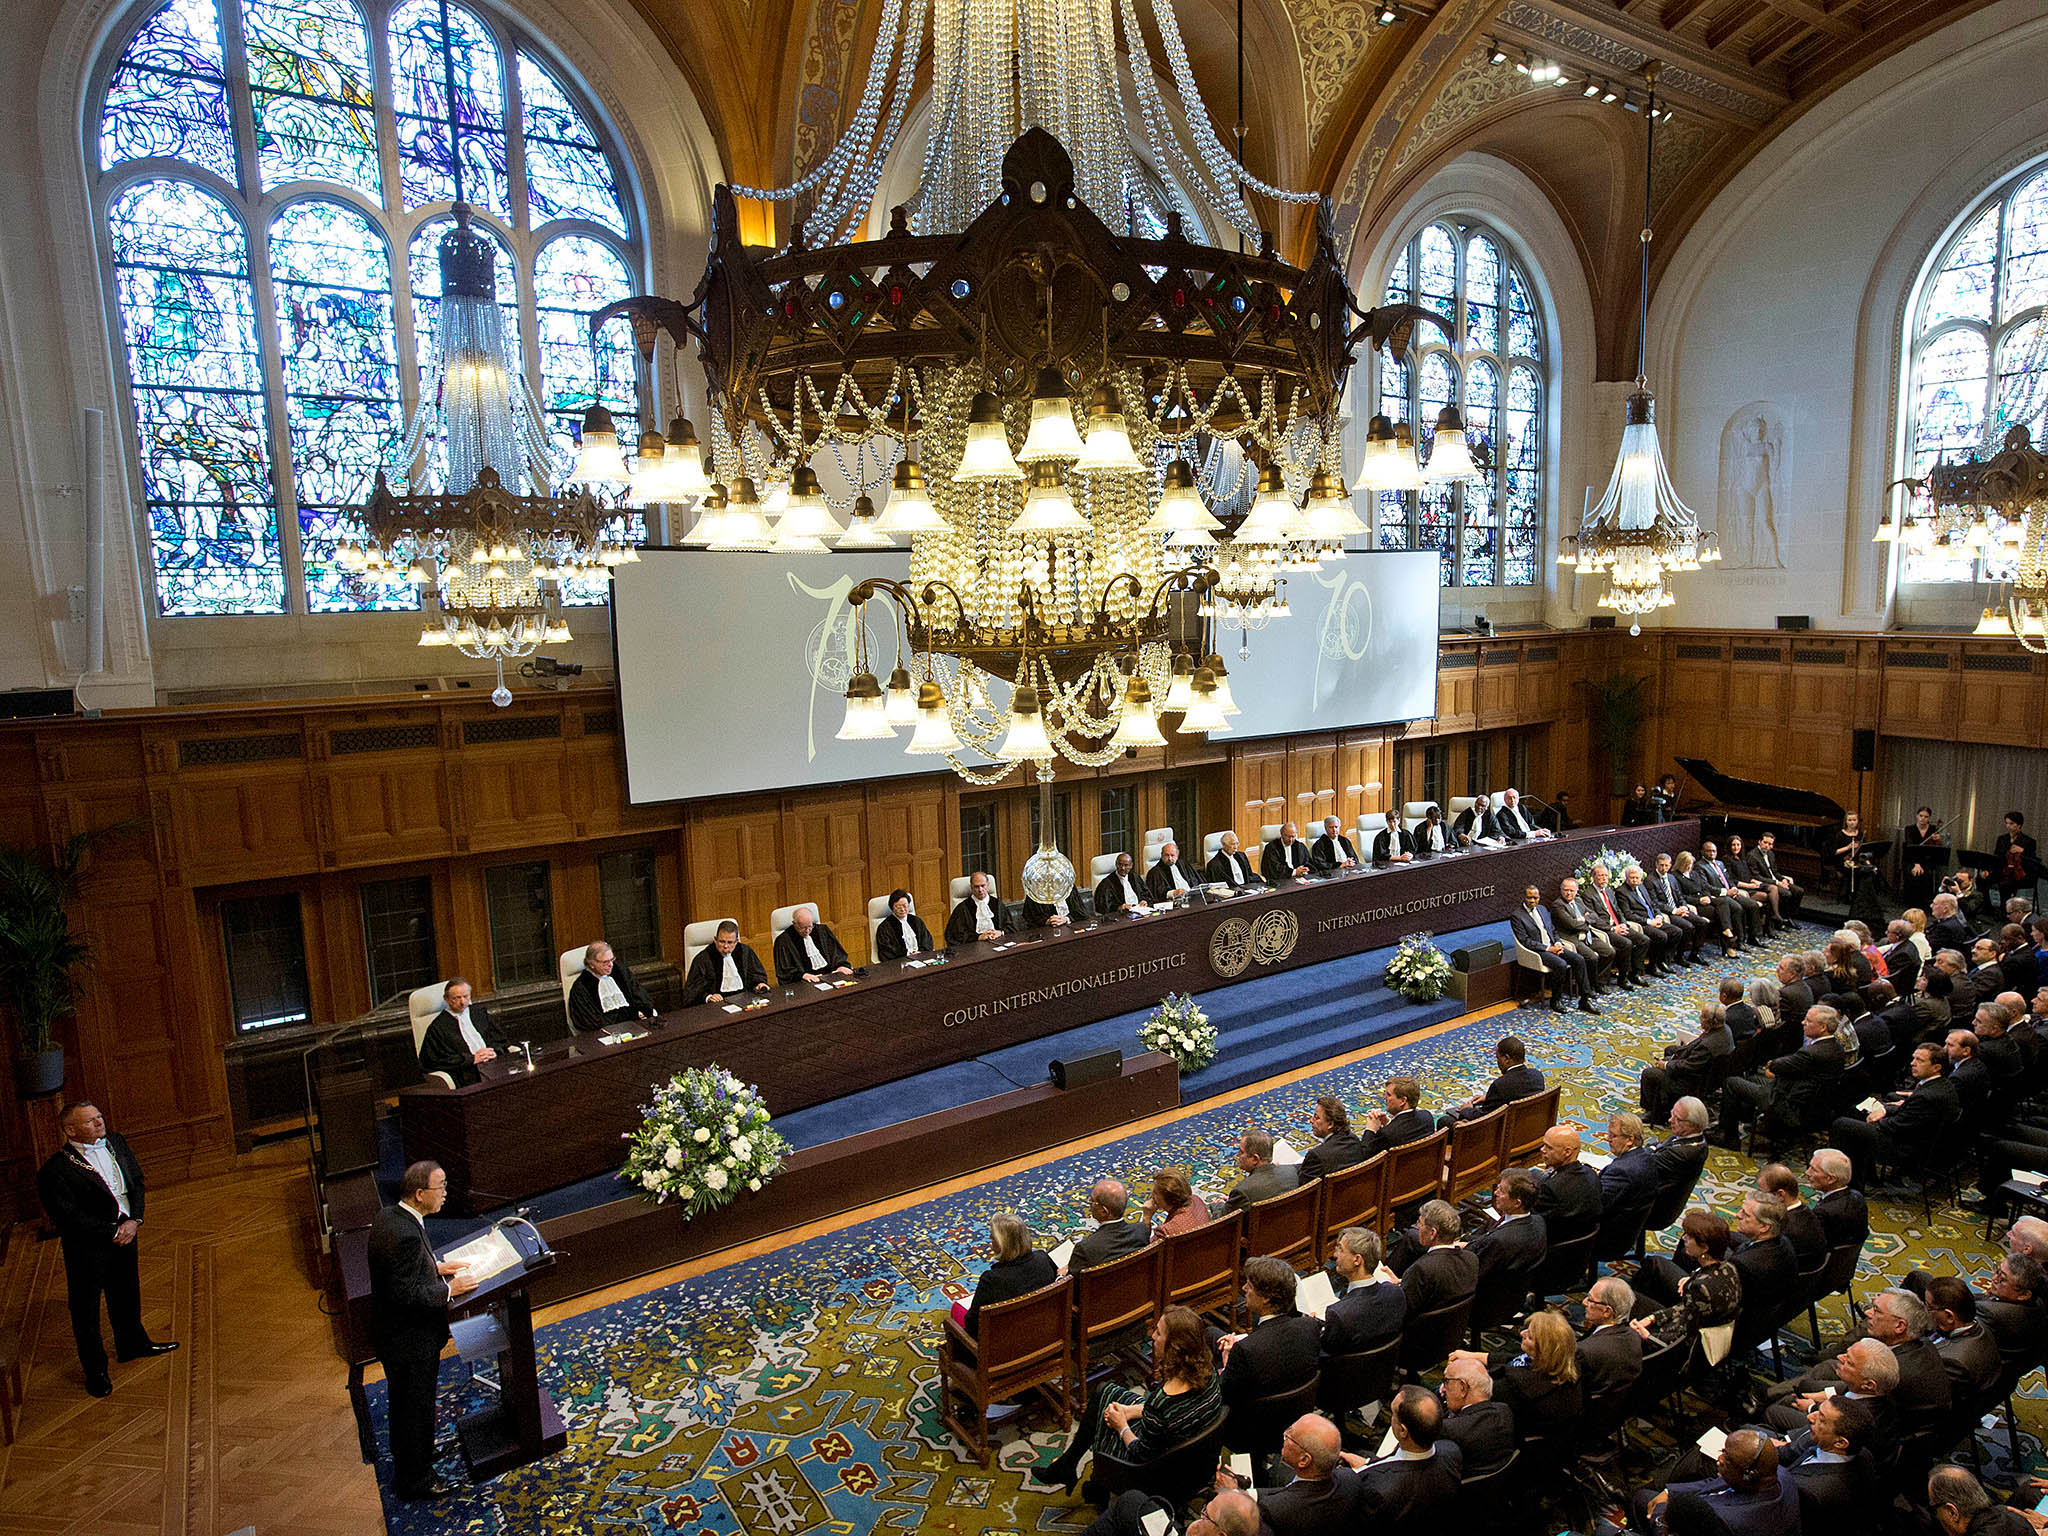 an overview of the international court of justice Statute of the international court of justice, 18th april 1946 (33 unts 993, ukts  67 (1946) cmd 7015, 3 bevans 1179, 59 stat 1055, 145 bsp.